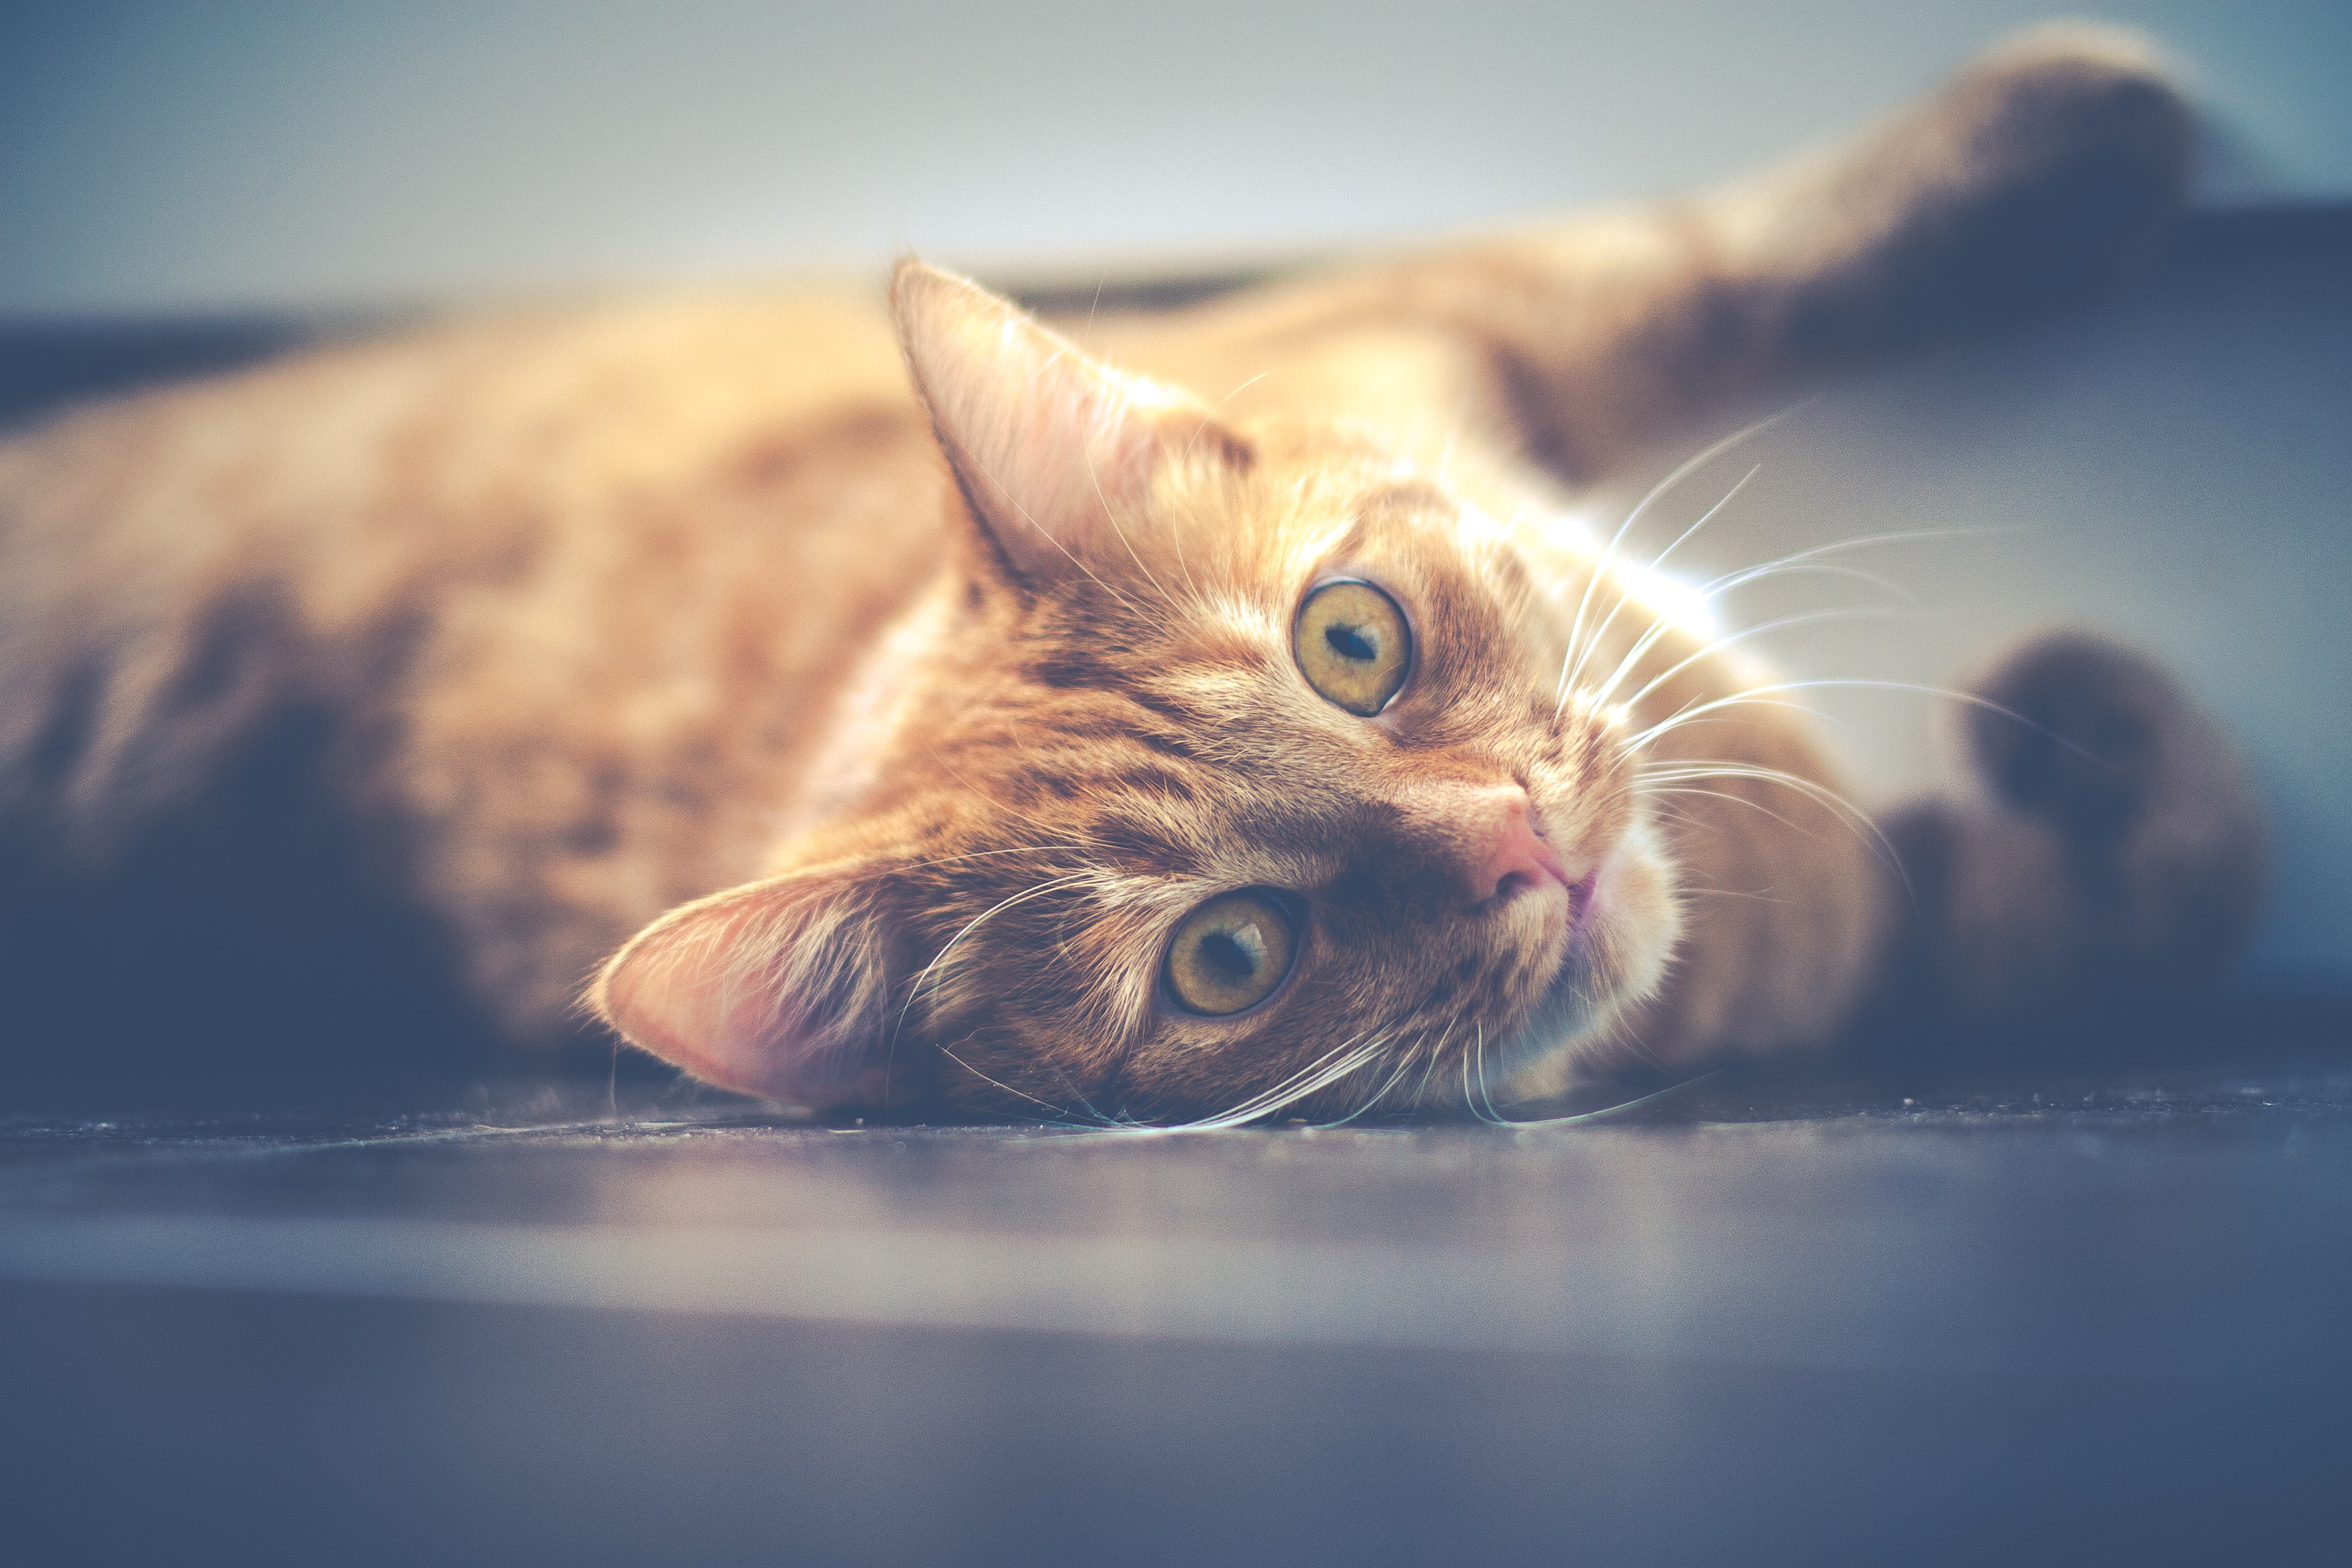 shallow focus photography of orange cat